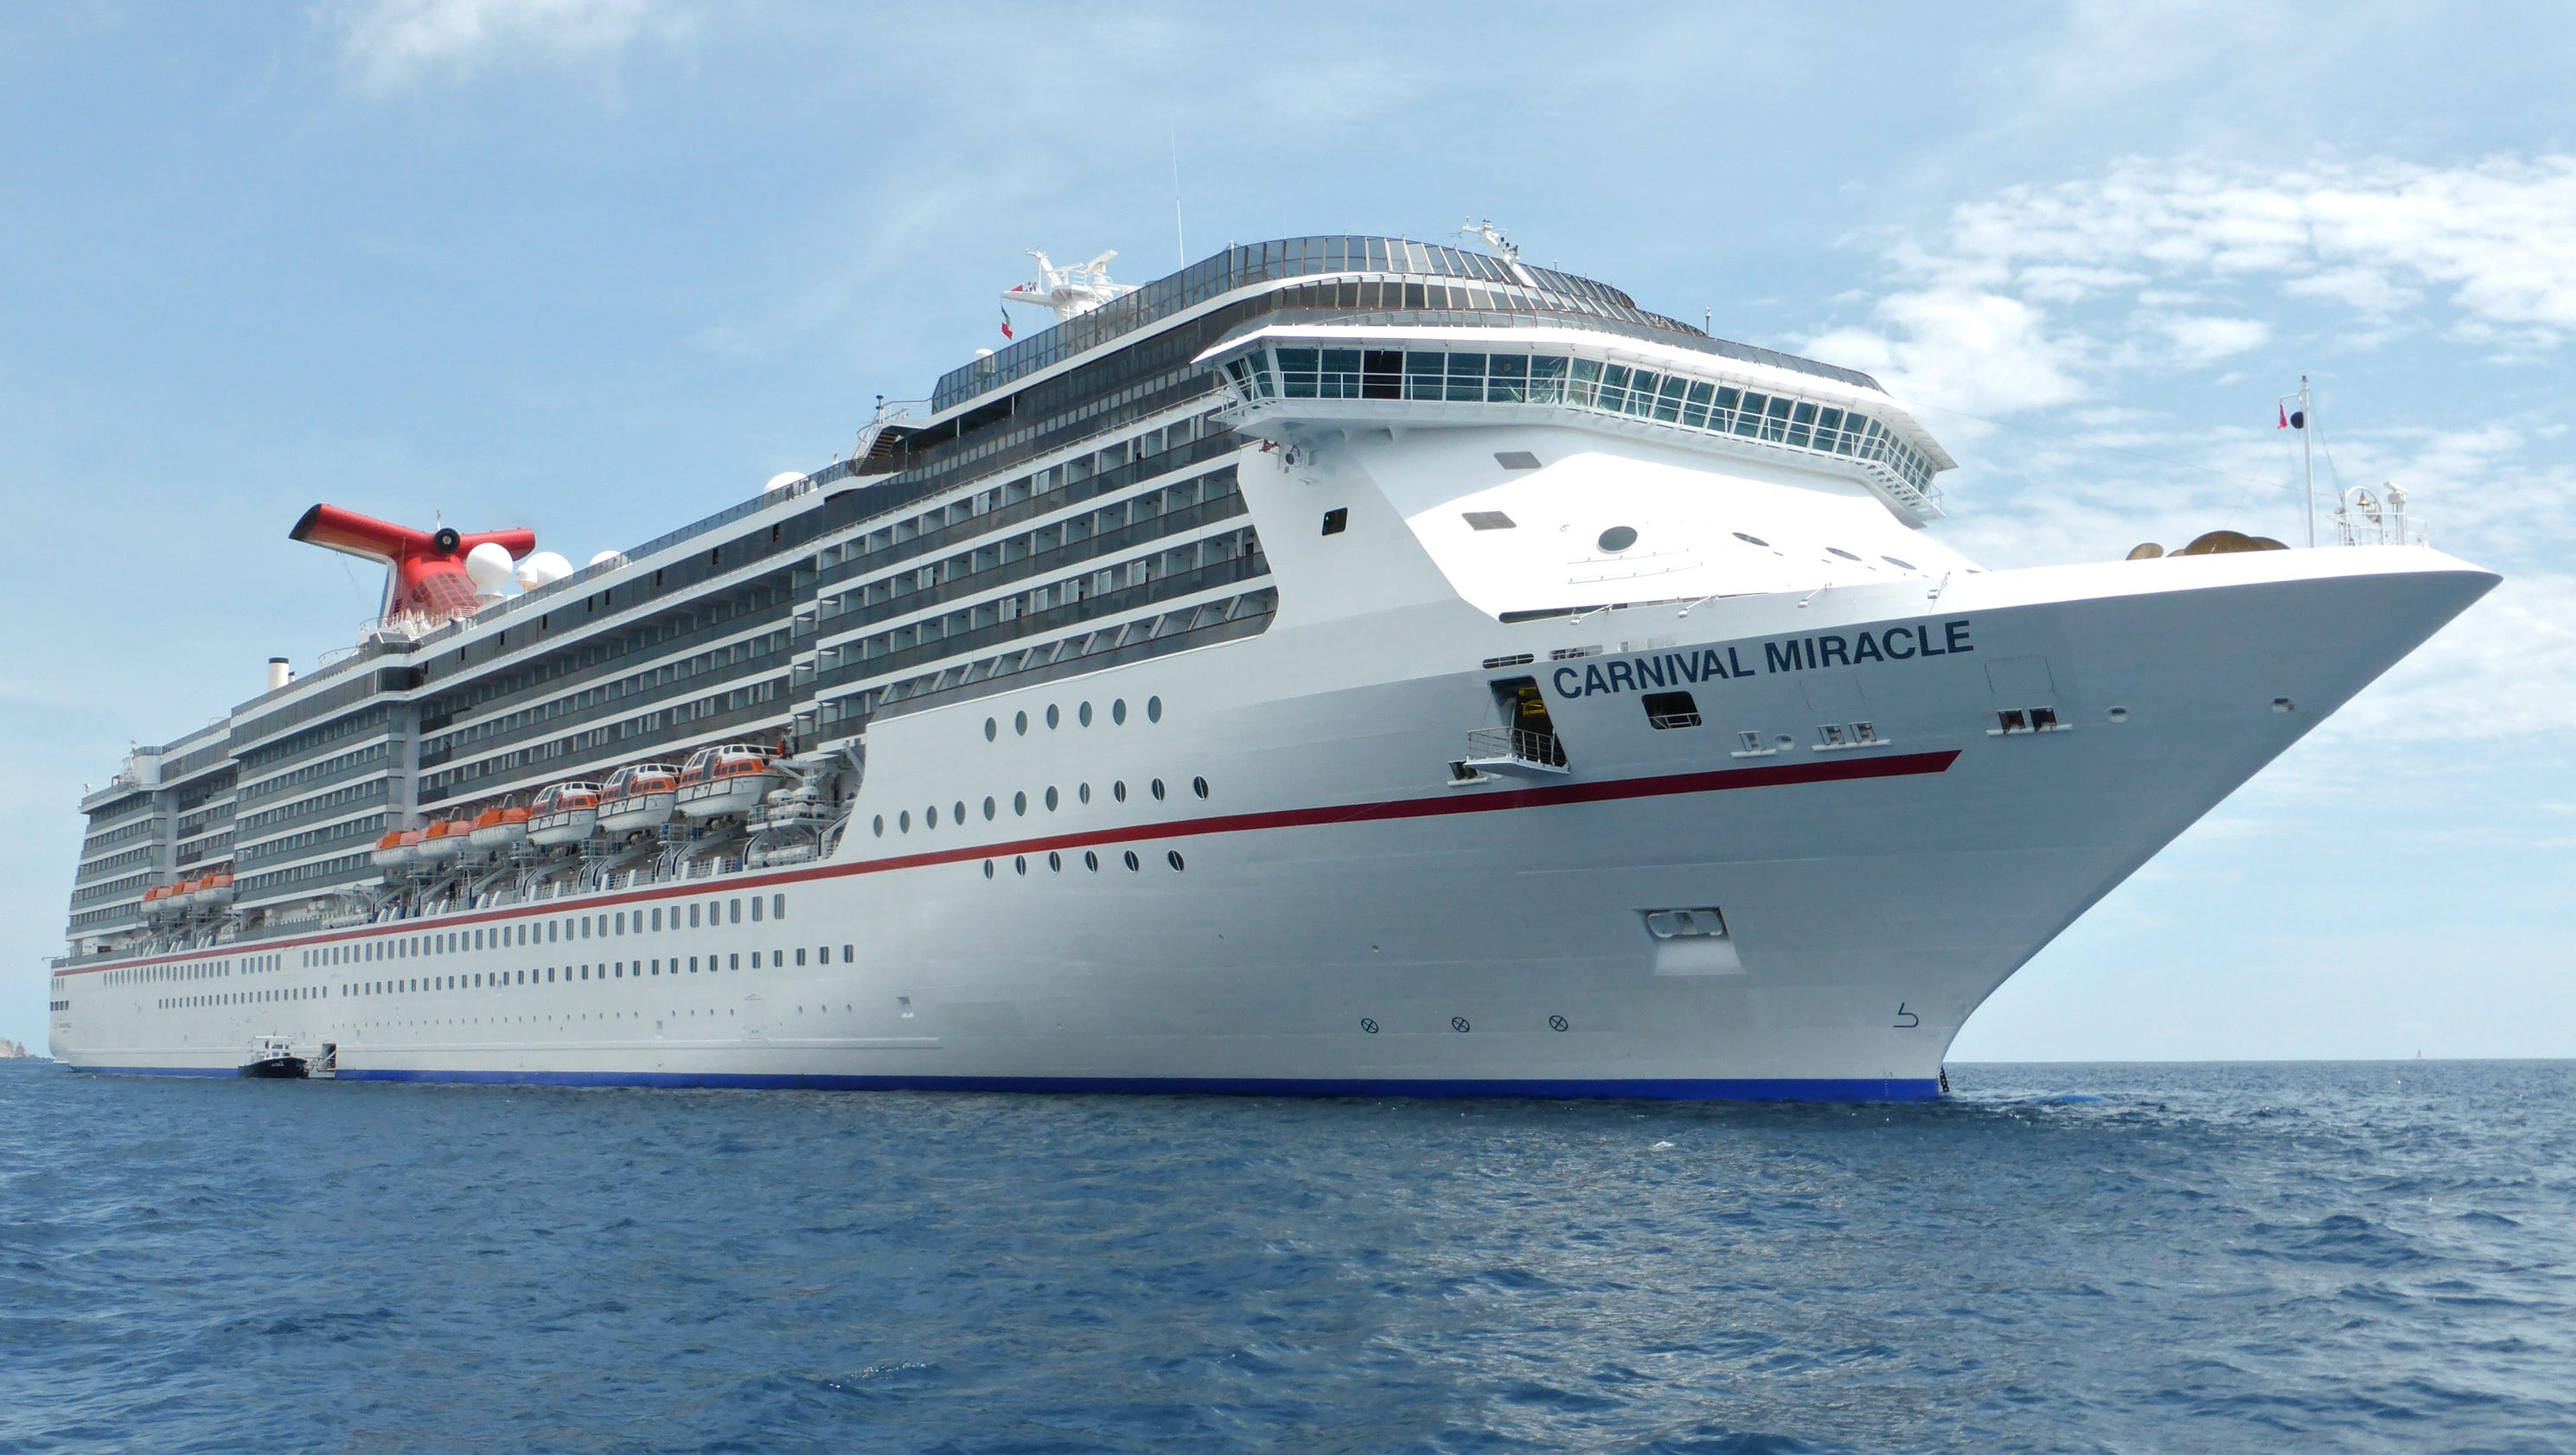 Cruise Ship Tours Carnival Cruise Line39s Carnival Miracle